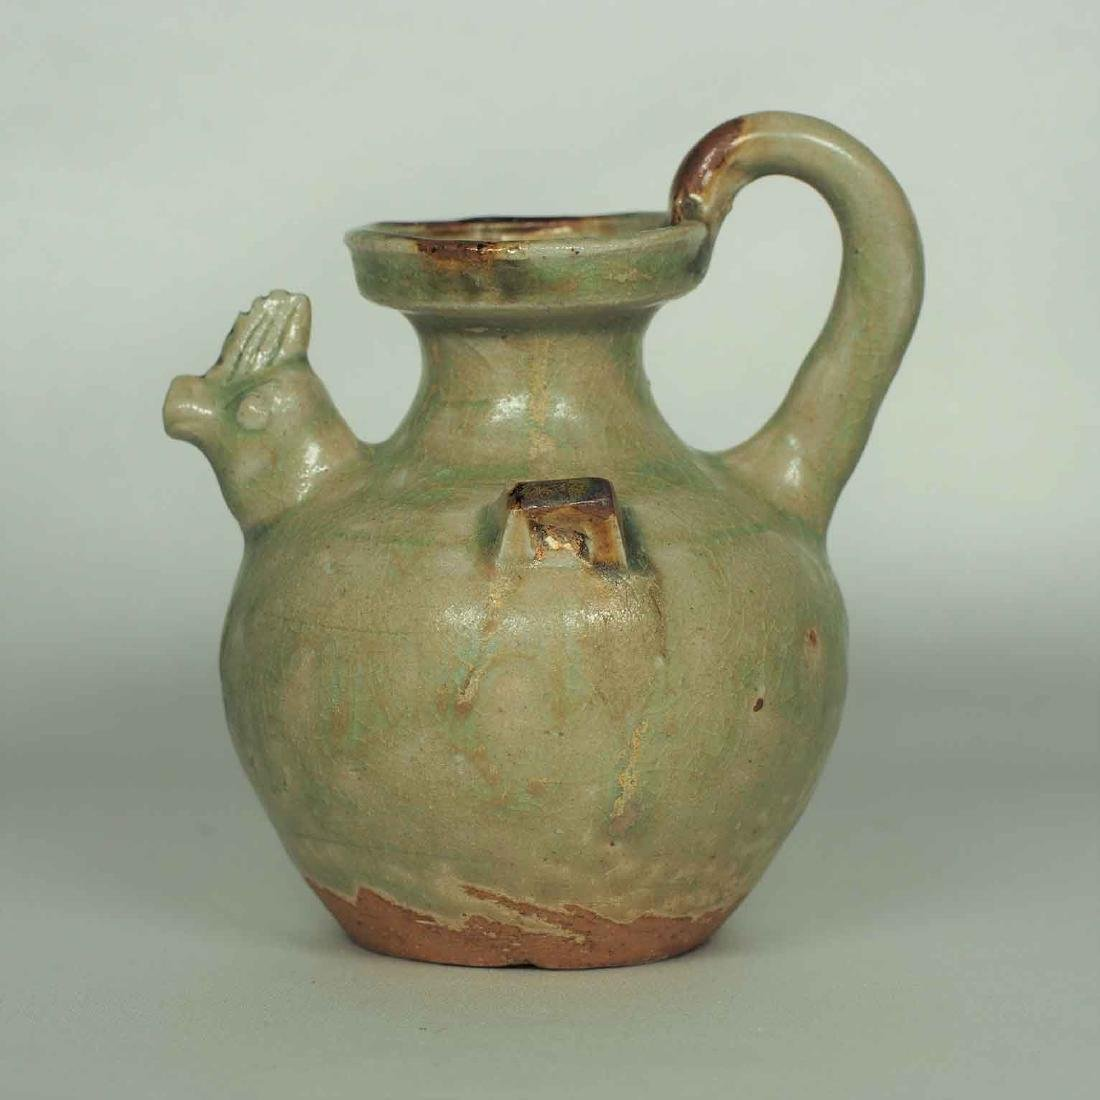 Yue Chicken-head Ewer Water Pot, Eastern Jin Dynasty